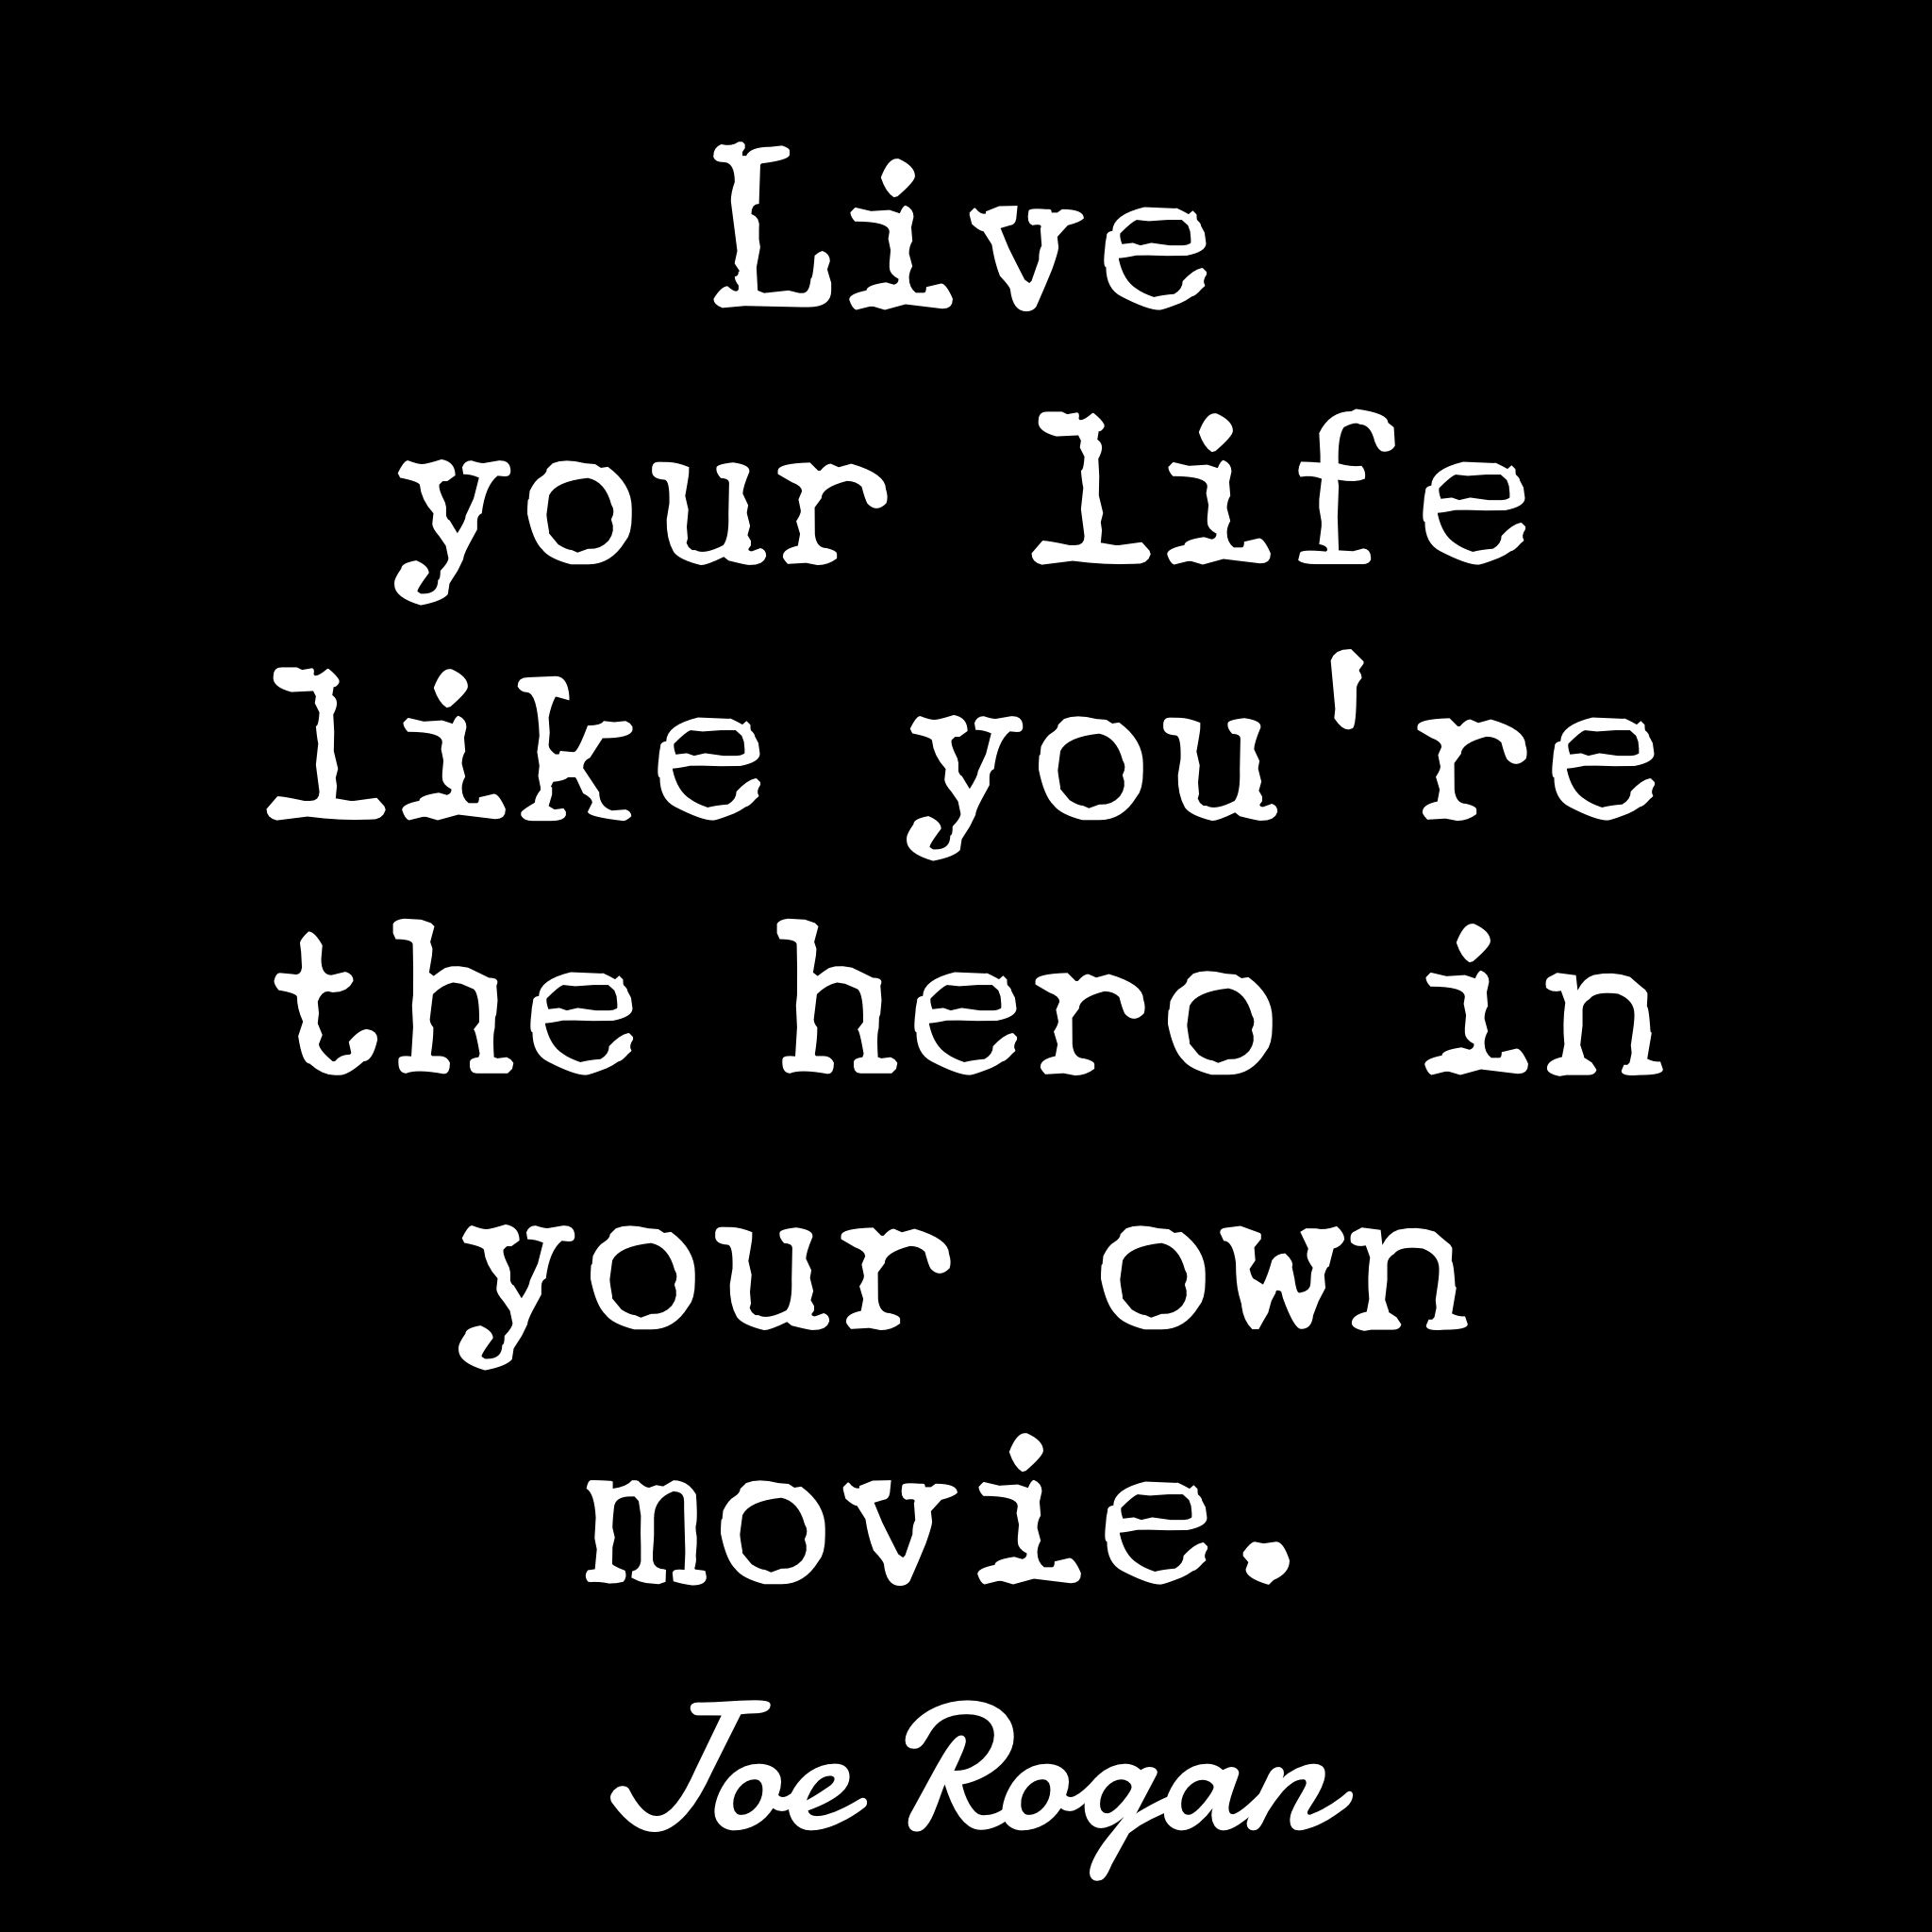 21 Highly Motivational Joe Rogan Quotes Hero Quotes Joe Rogan Quotes Vision Quotes